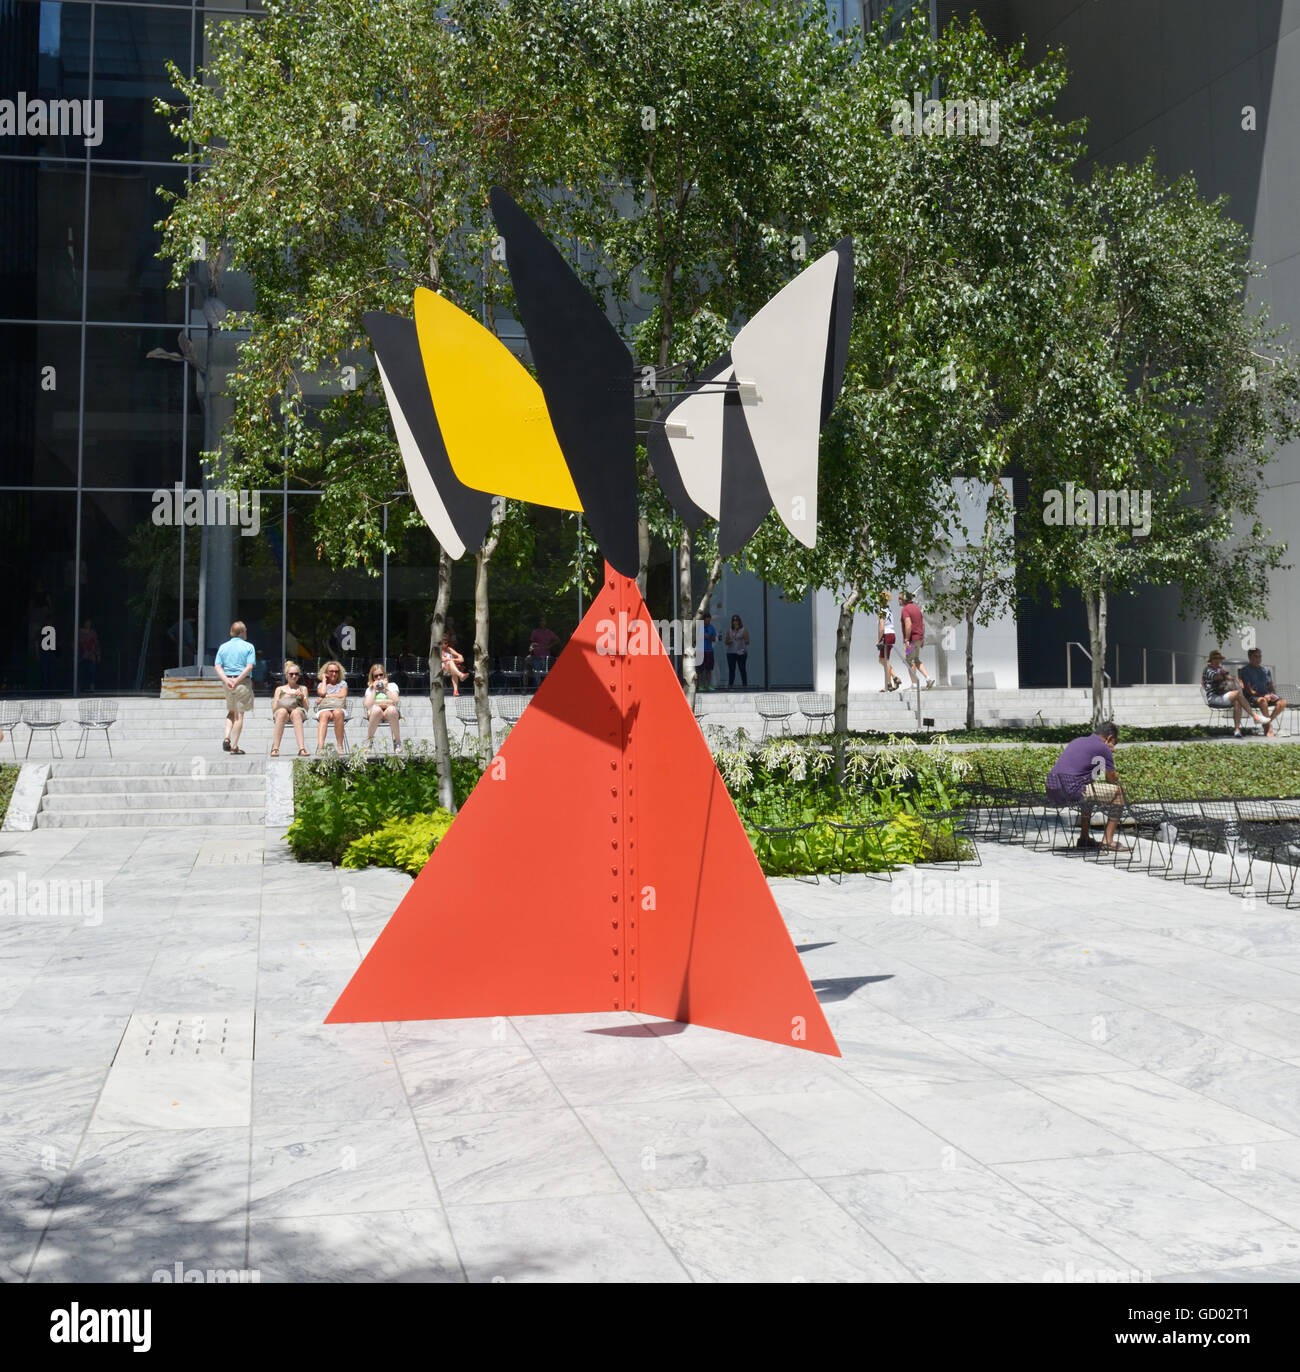 Sandy's Butterfly, 1964, by Alexander Calder, sculpture garden at MOMA, NYC - Stock Image